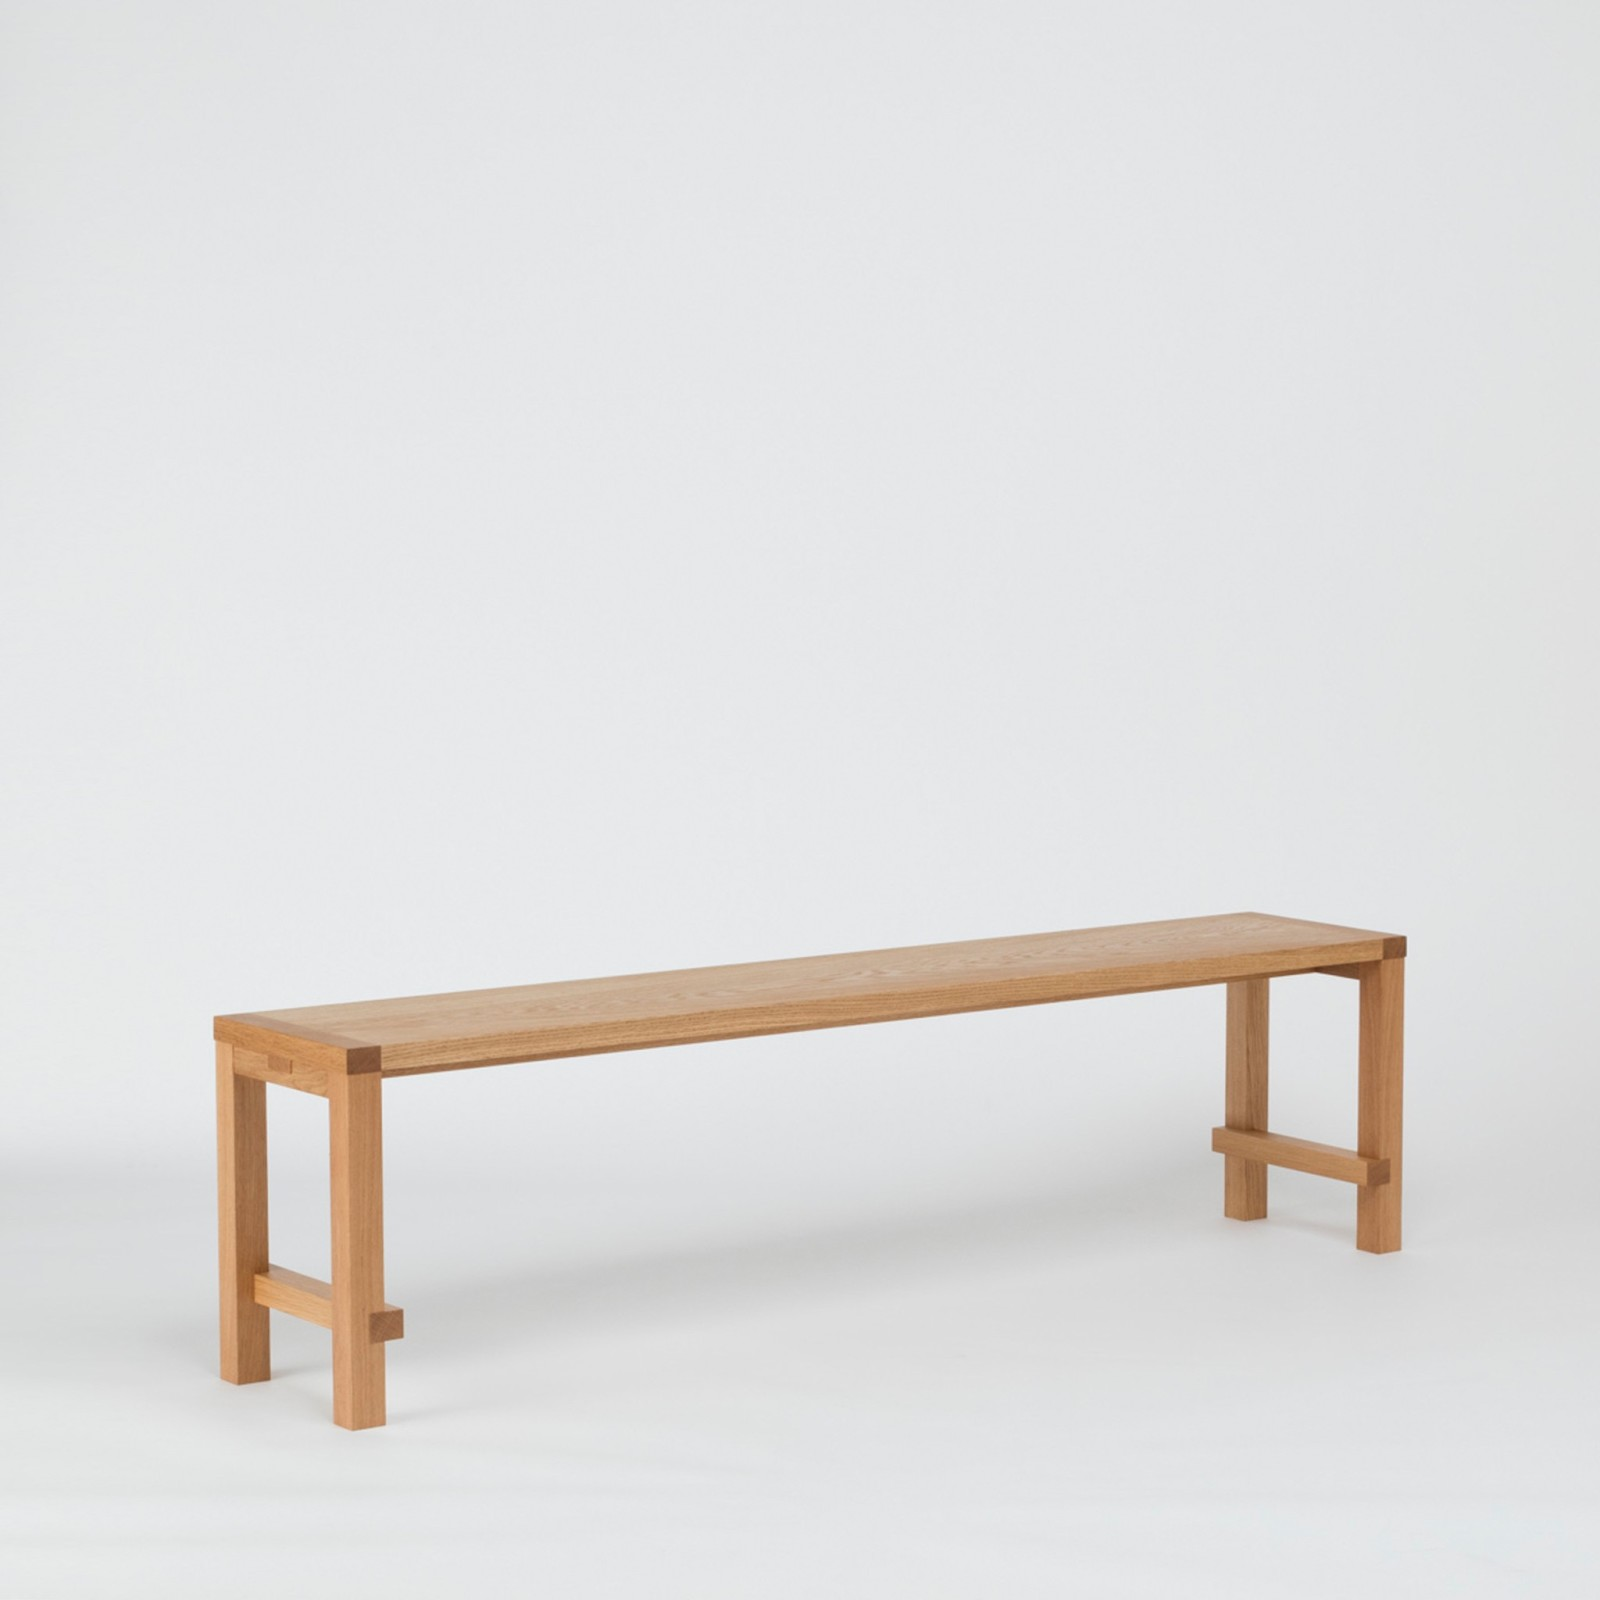 Bench Four Oak, 1690 mm